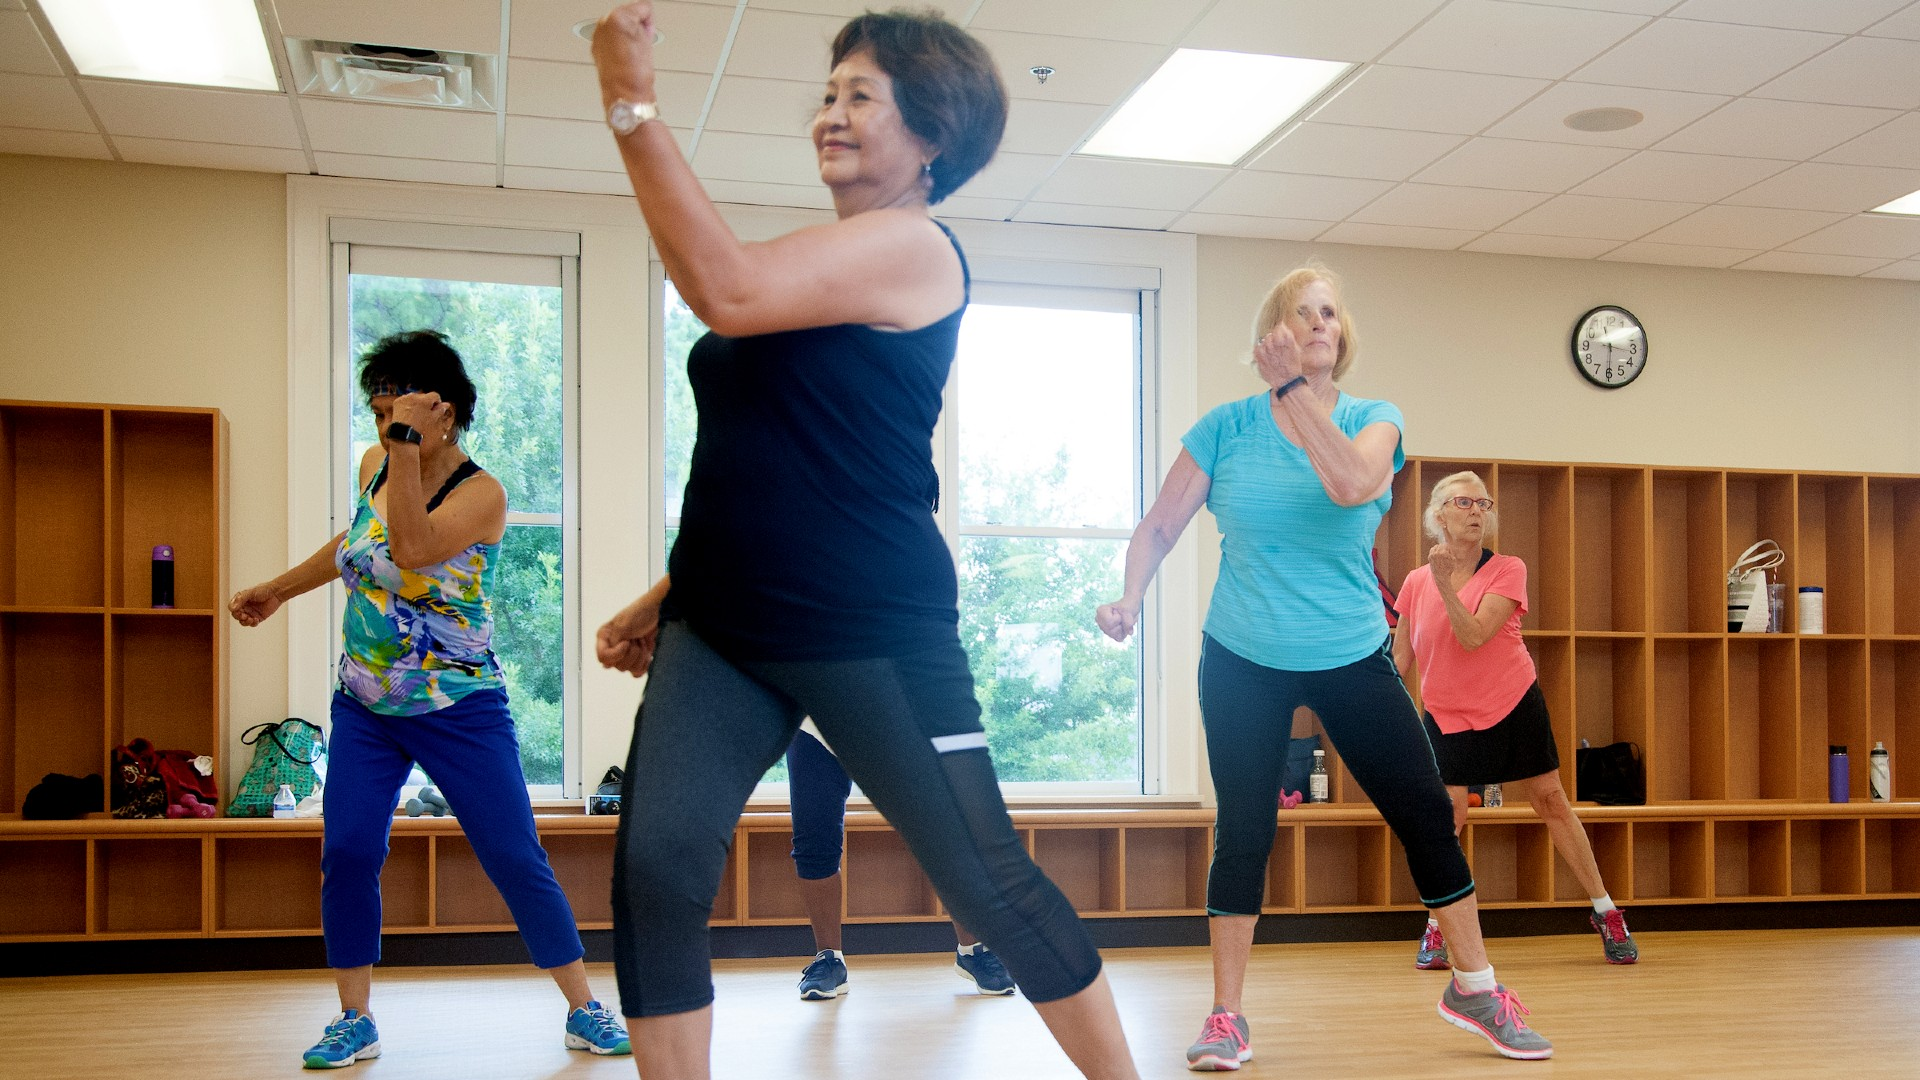 Woman smiling leading a cardio fitness class for women at Millbrook Community Center.